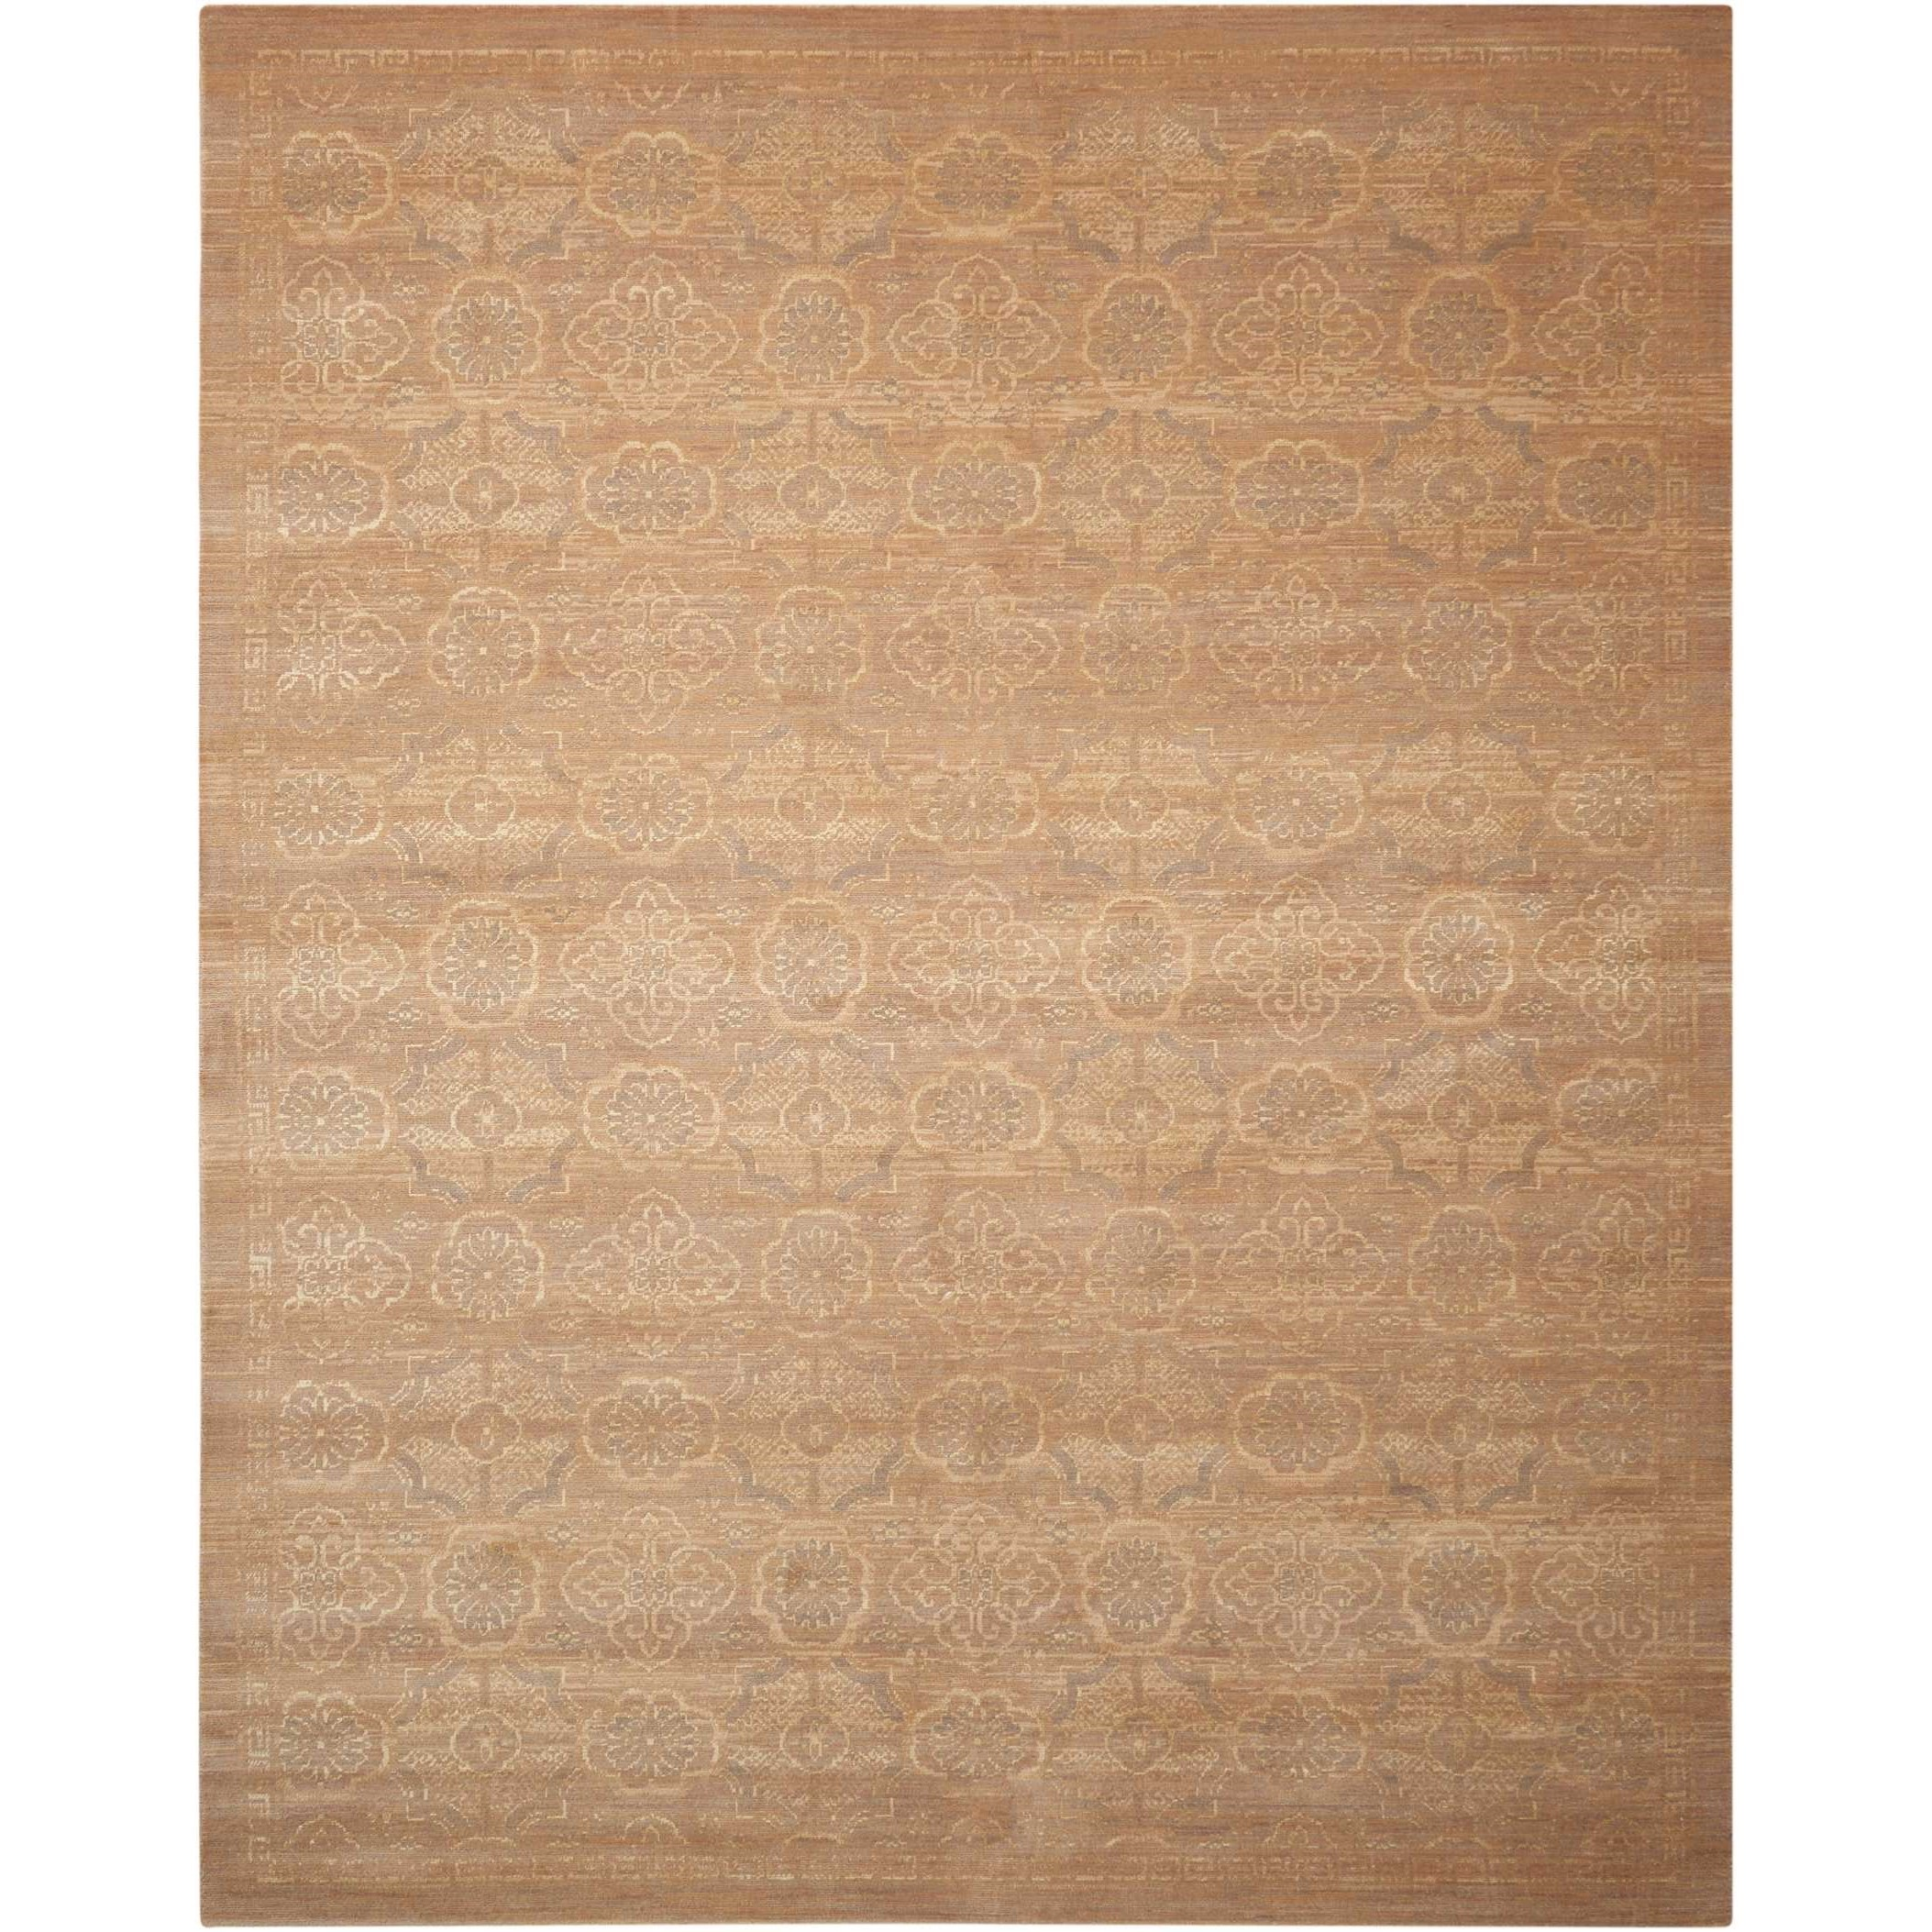 """Silken Allure 8'6"""" x 11'6"""" Beige Rectangle Rug by Nourison at Home Collections Furniture"""